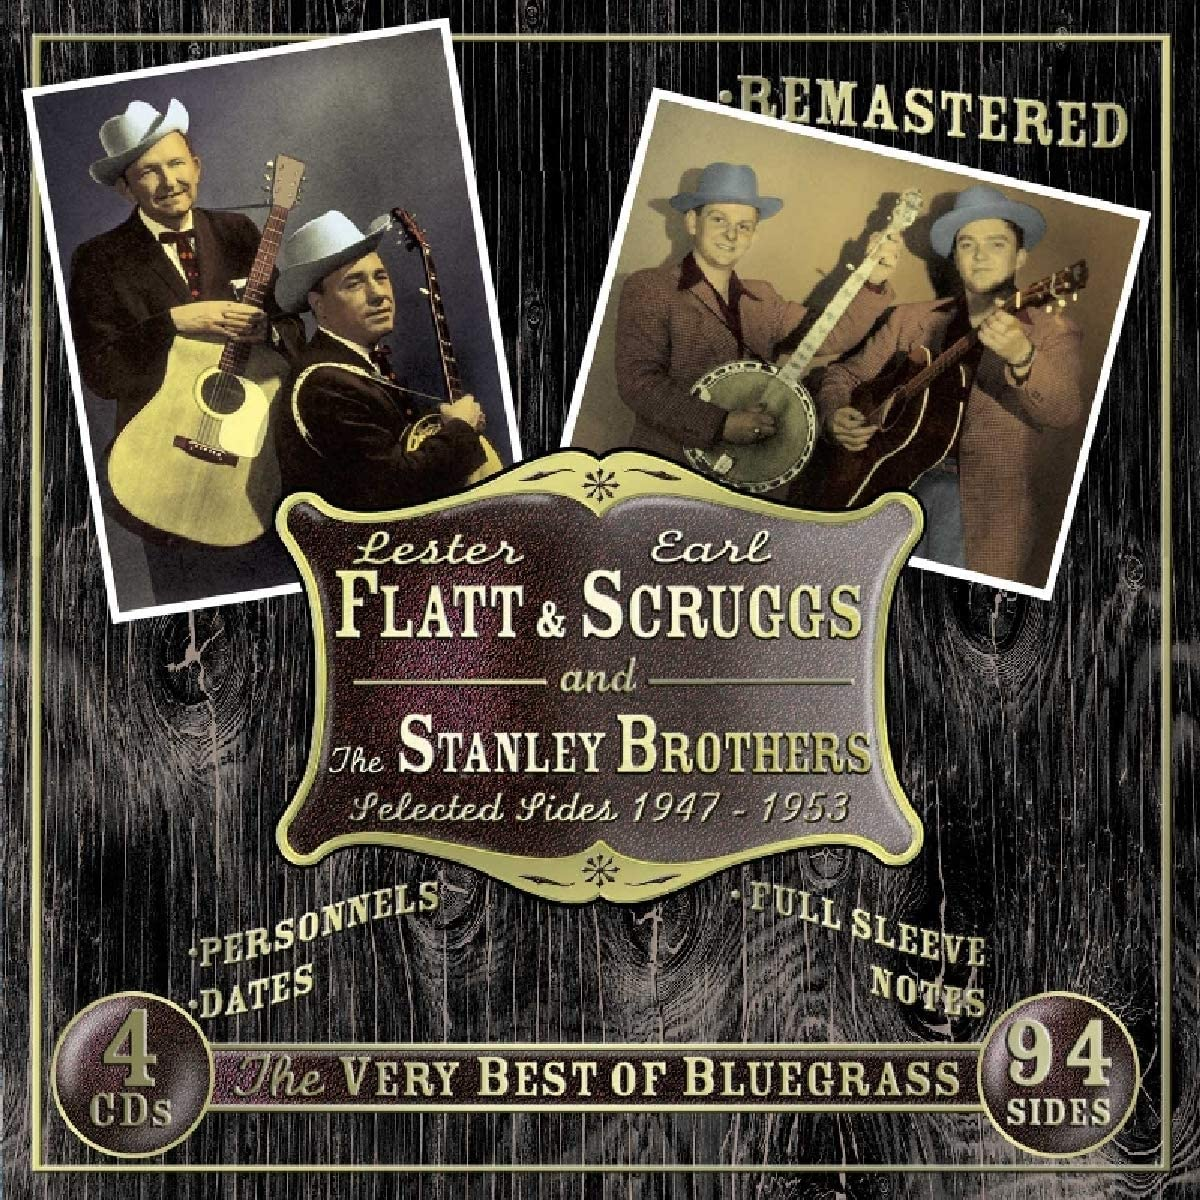 Flatt & Scruggs +Stanley Brothers/1947-1953 (4 CD Box) [CD]